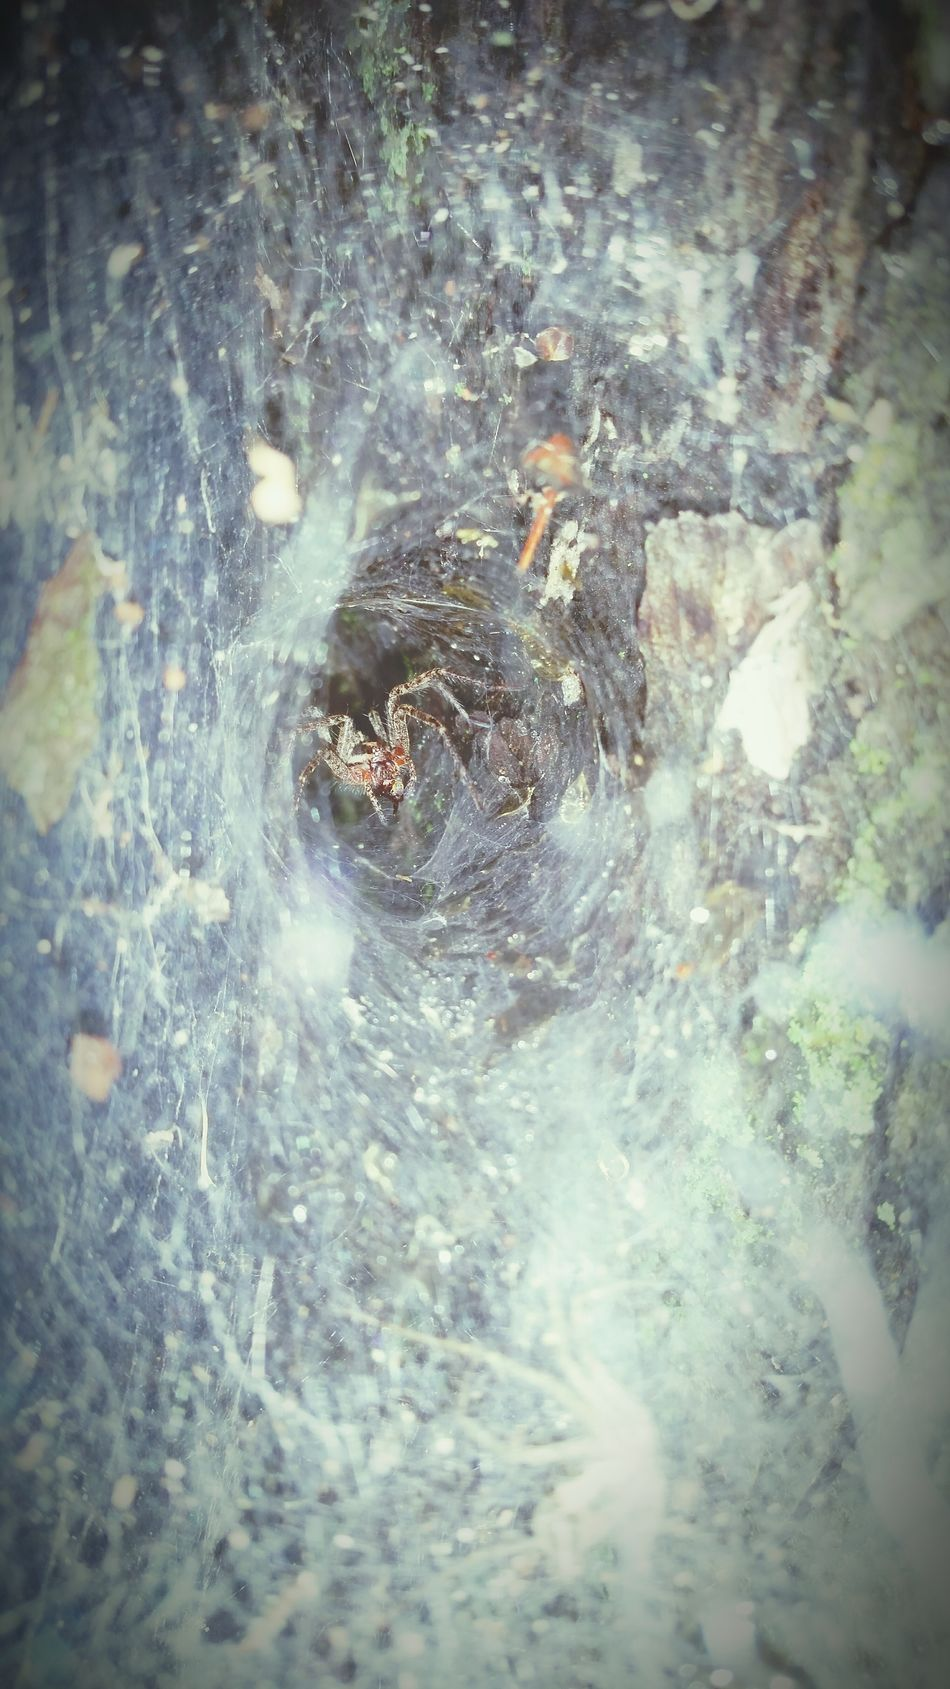 Spider in its nest Art Nature Life Water_collection Spiderweb Spider Web, Dew, Morning, Spiders Captured Moment Spider Web Tunnel